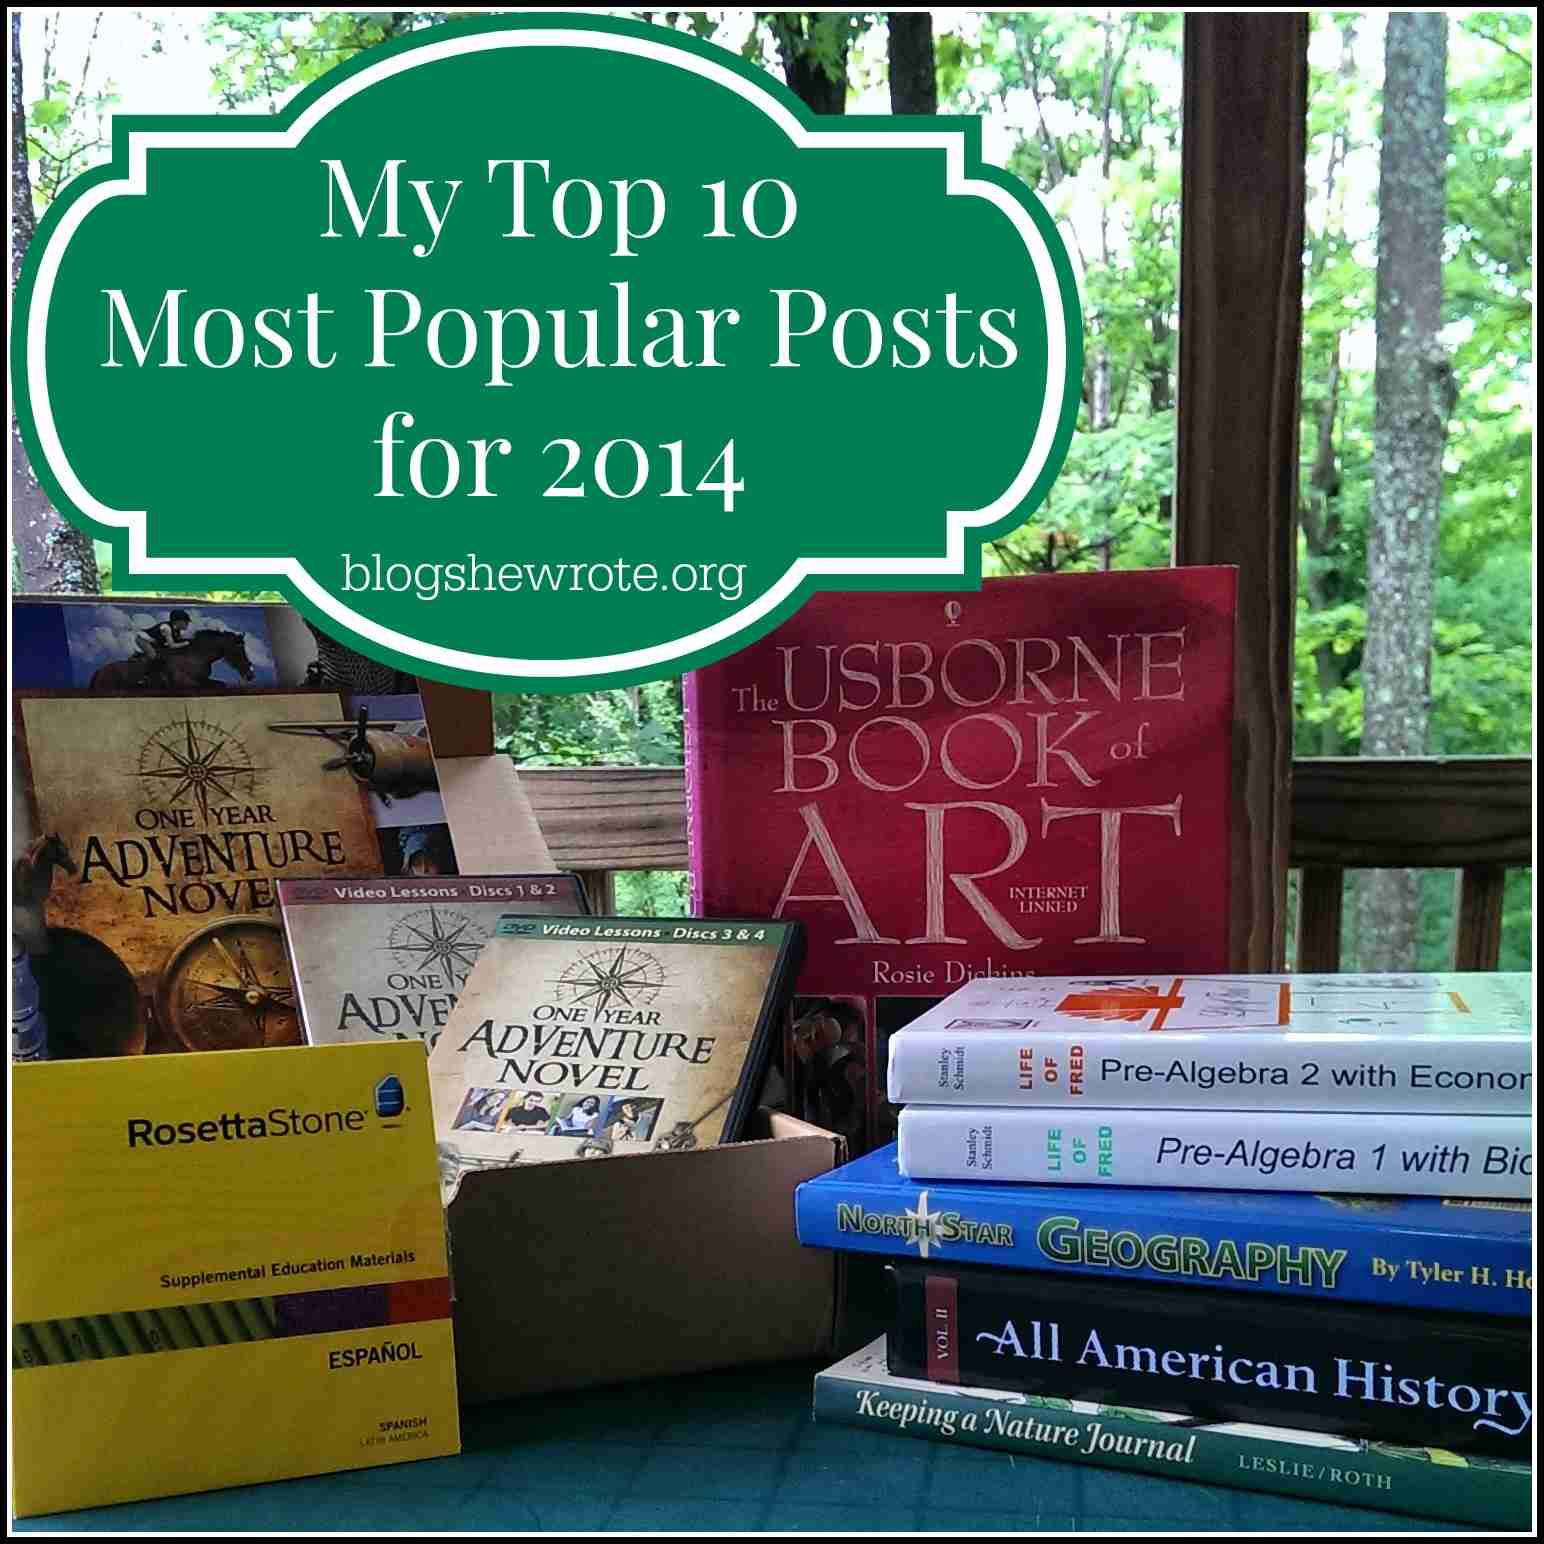 Blog, She Wrote: My Top 10 Most Popular Posts for 2014